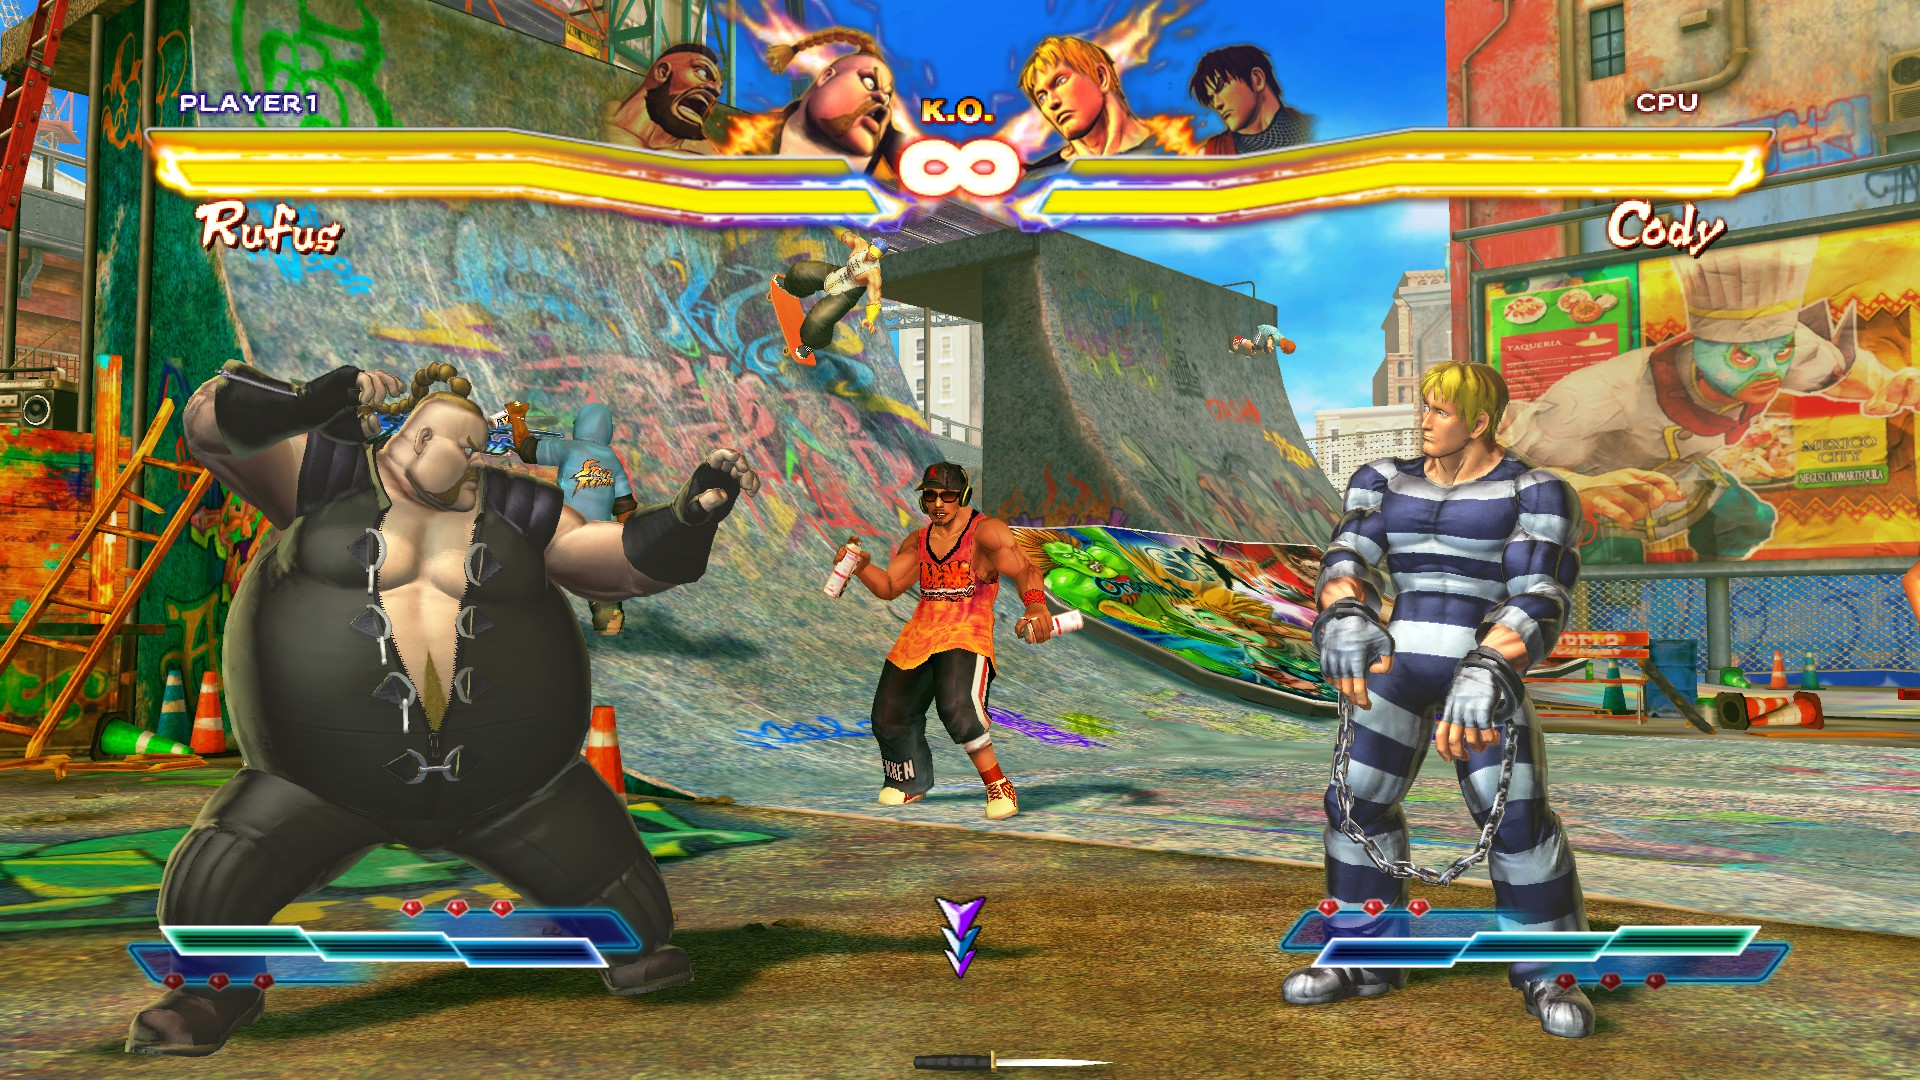 SFXT Half Pipe 1F.jpg & Image - SFXT Half Pipe 1F.jpg | Street Fighter Wiki | FANDOM powered ...